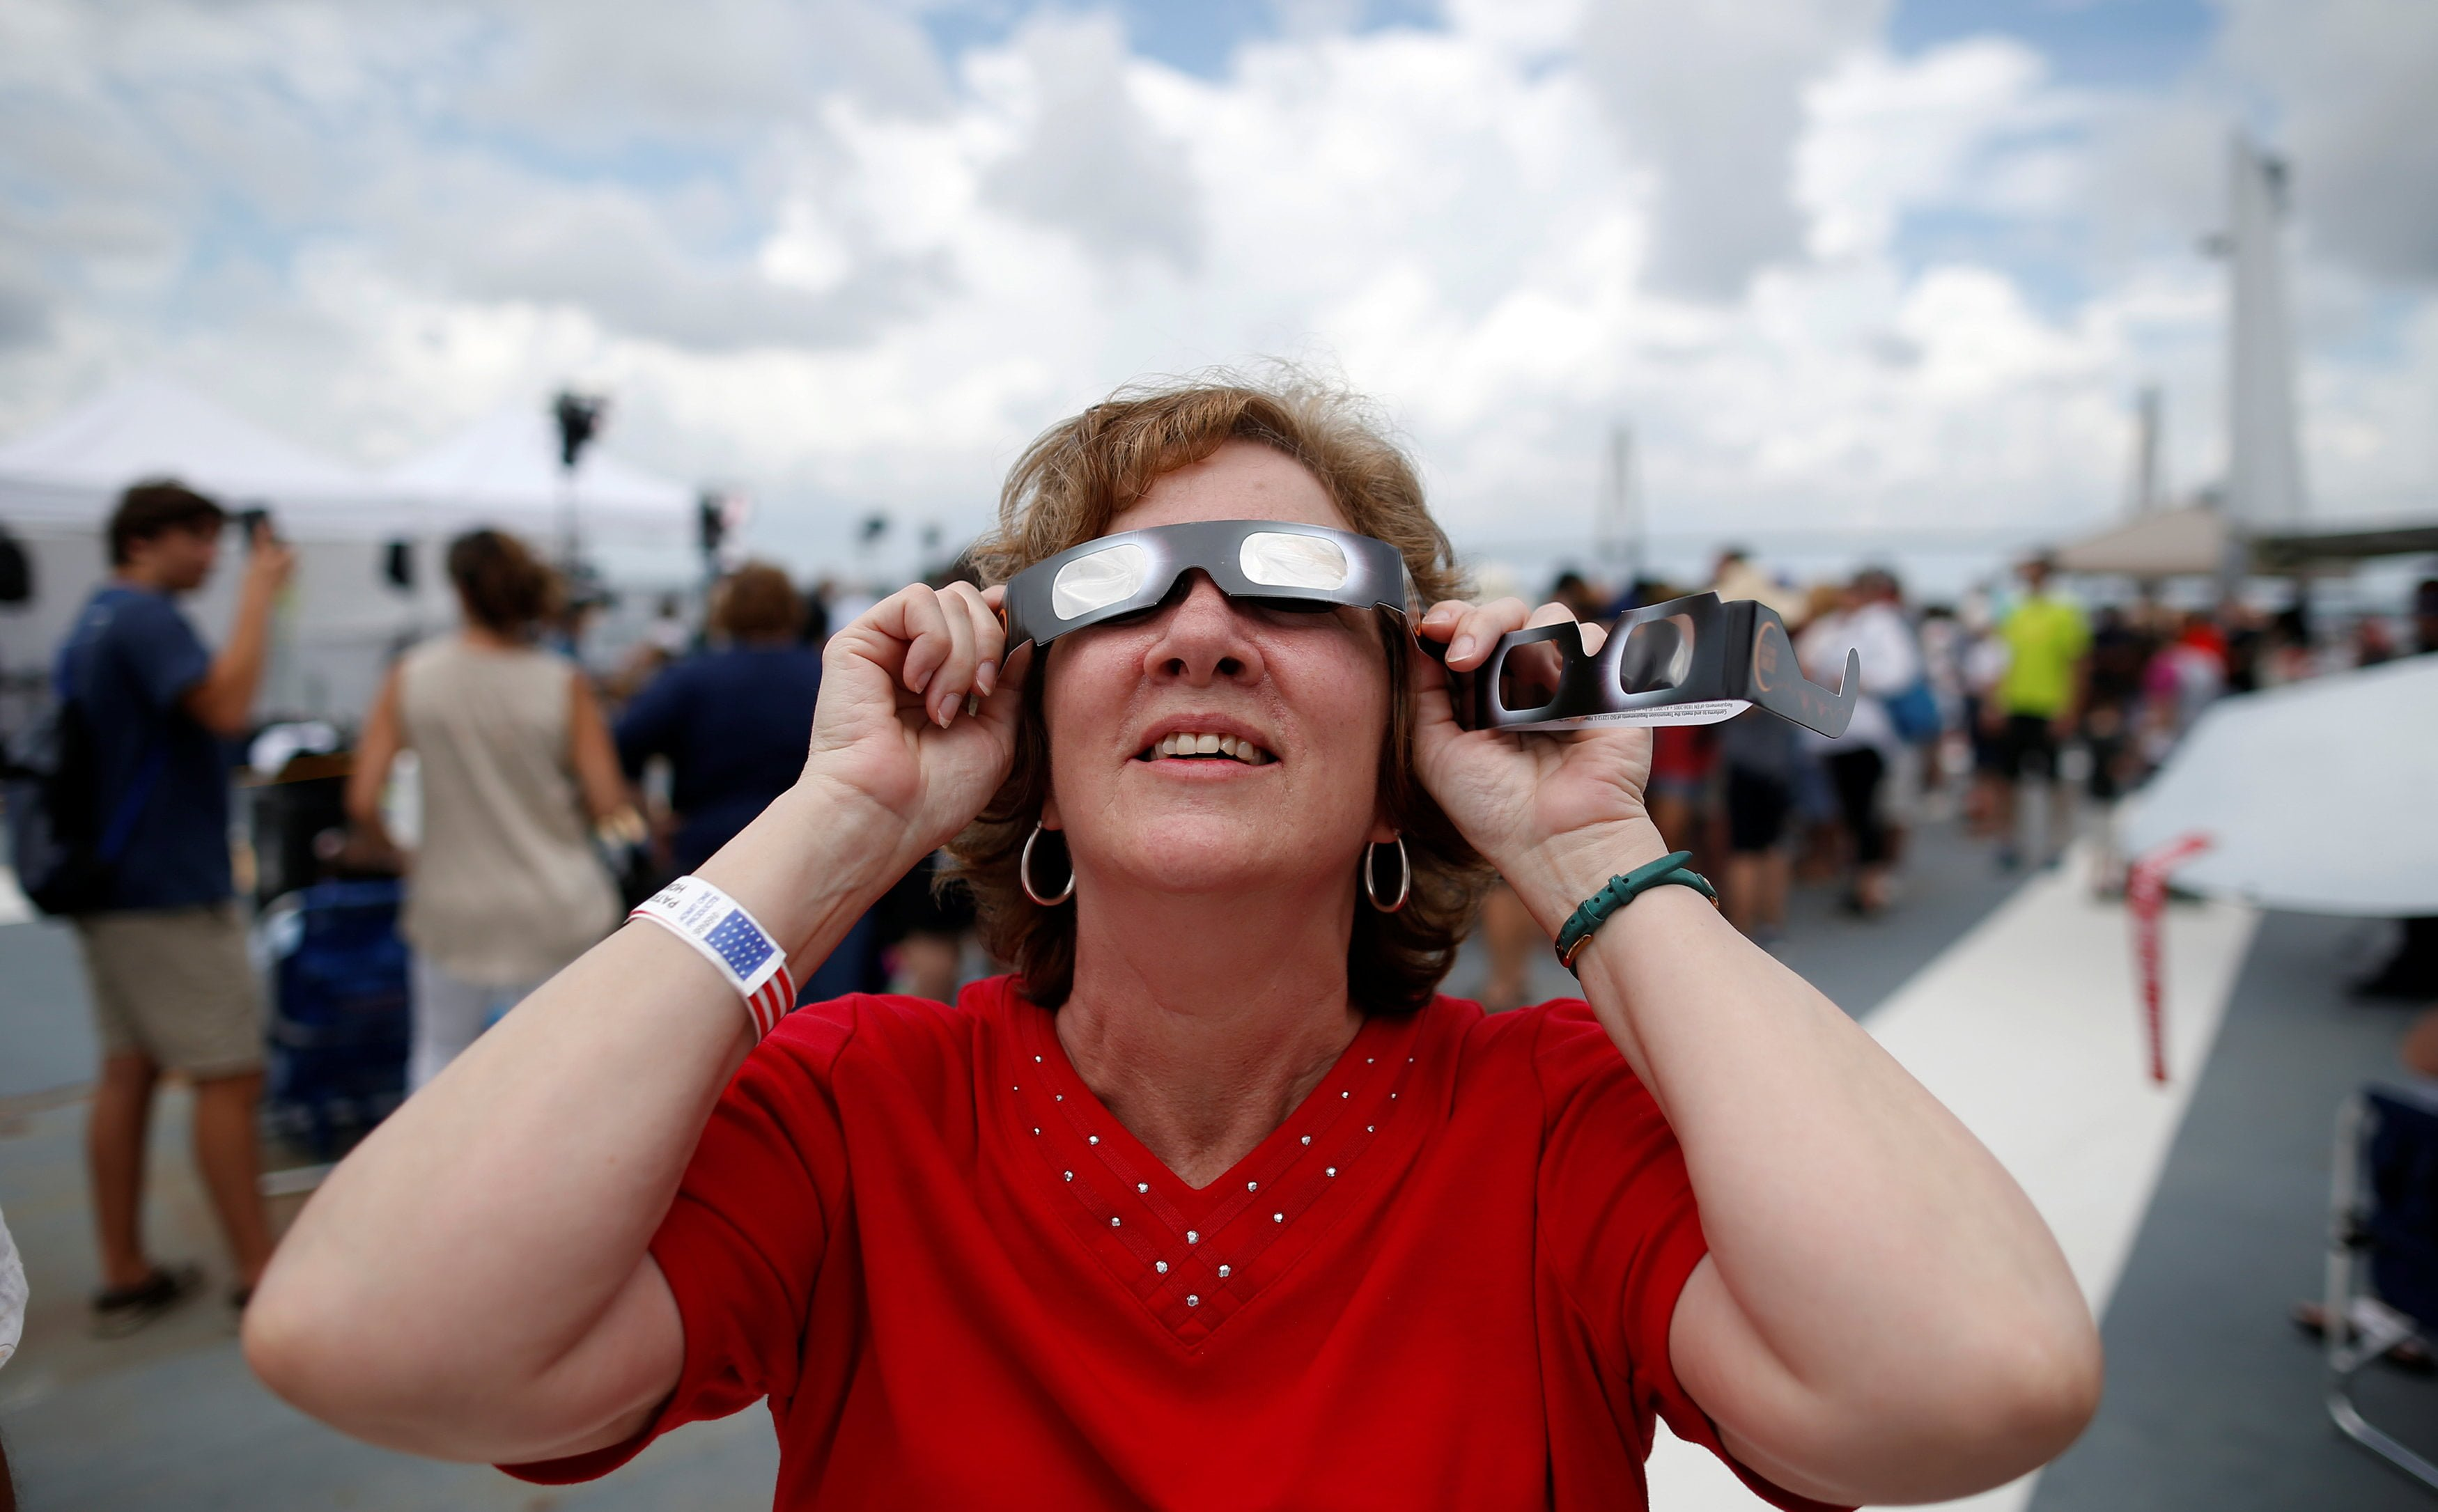 Anita Hayes of Denver, North Carolina, checks out the position of the sun on the flight deck of the Naval museum ship U.S.S. Yorktown during the Great American Eclipse in Mount Pleasant